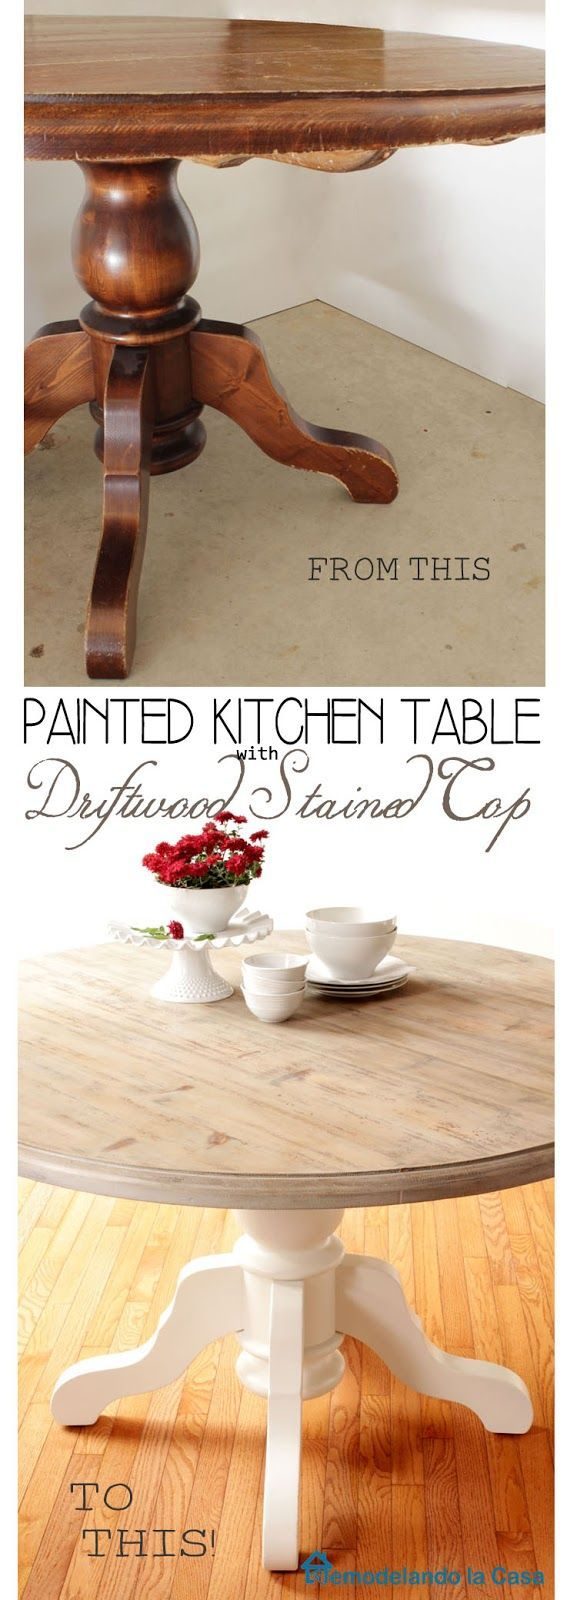 driftwood kitchen table top makeover.... Rustoleum wood stains in driftwood color